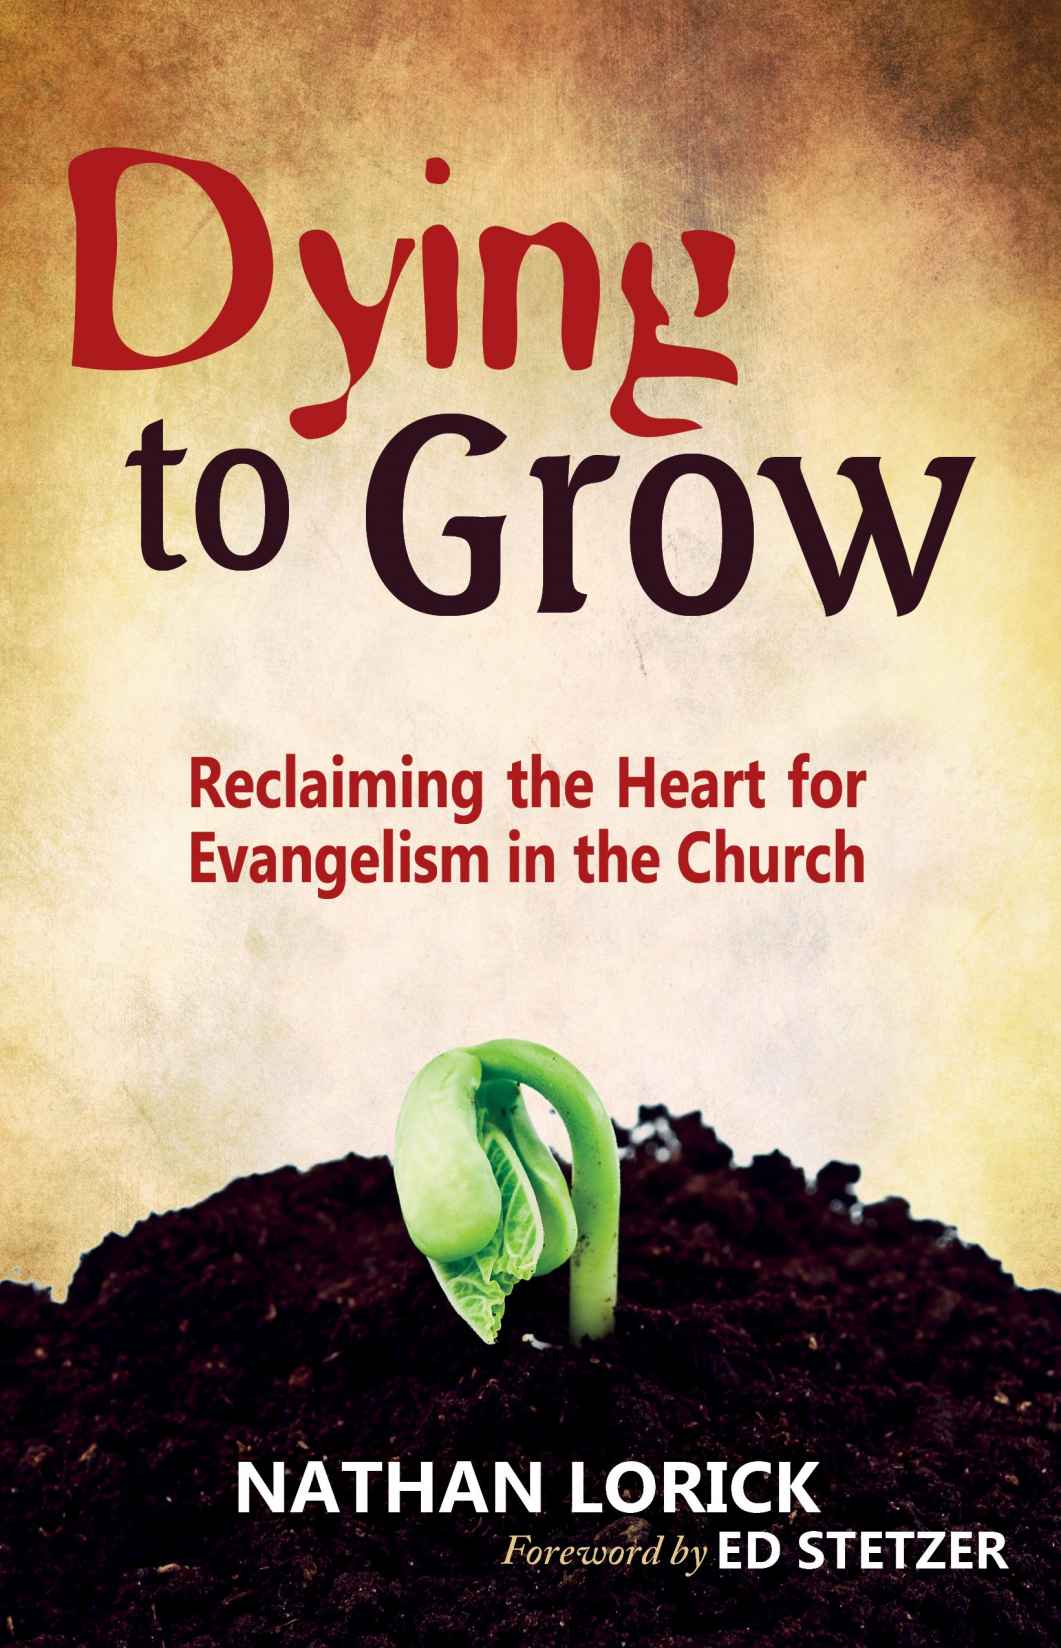 Dying to Grow: Reclaiming the Heart for Evangelism in the Church (Free eBook Sampler)